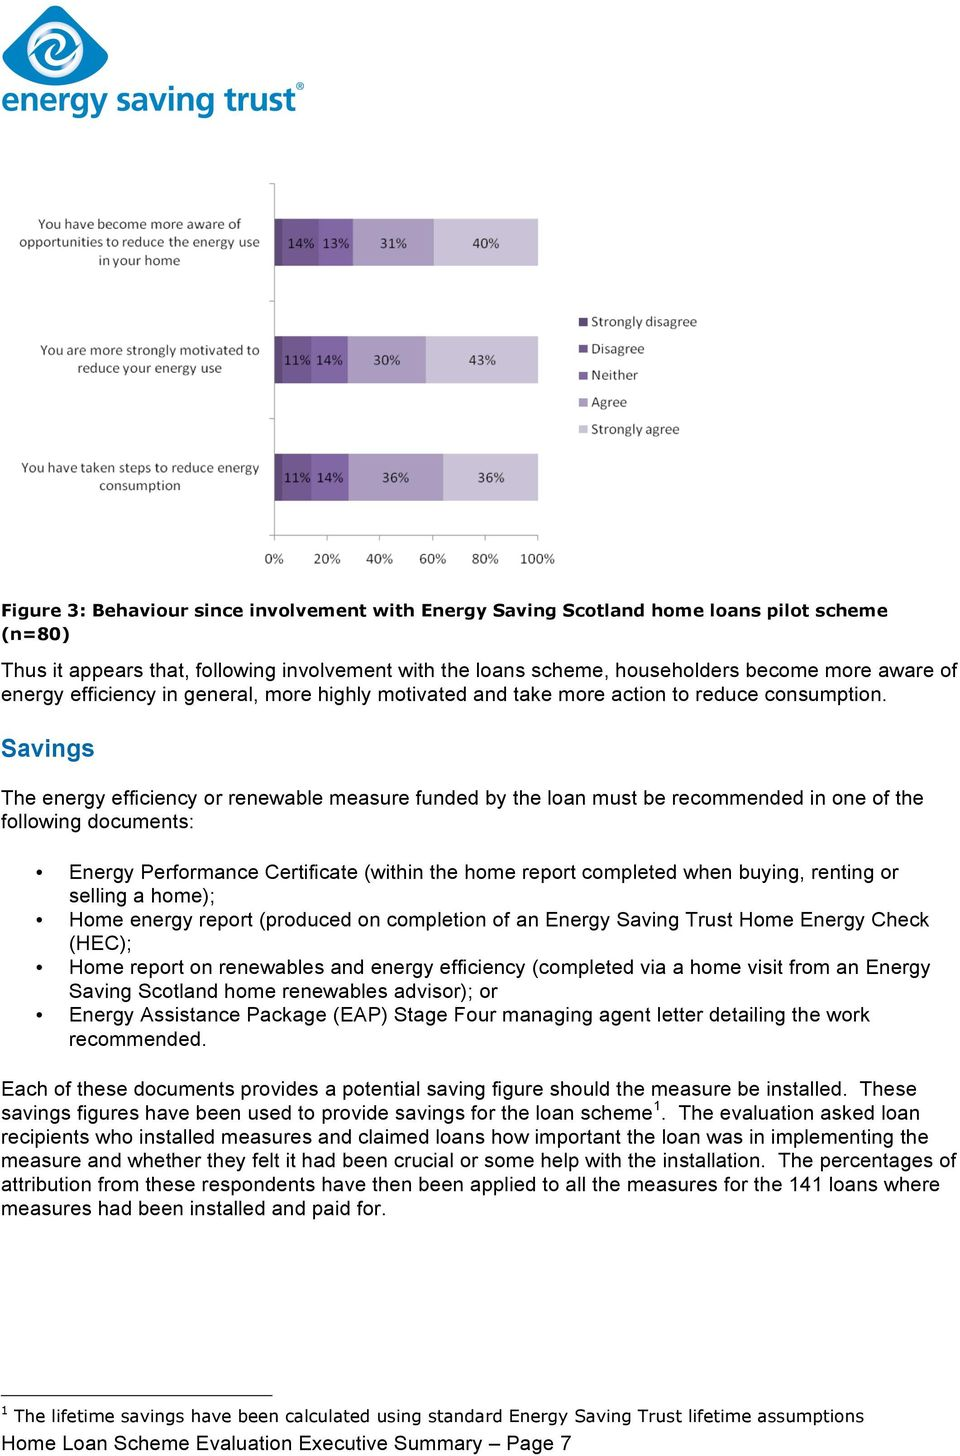 Savings The energy efficiency or renewable measure funded by the loan must be recommended in one of the following documents: Energy Performance Certificate (within the home report completed when